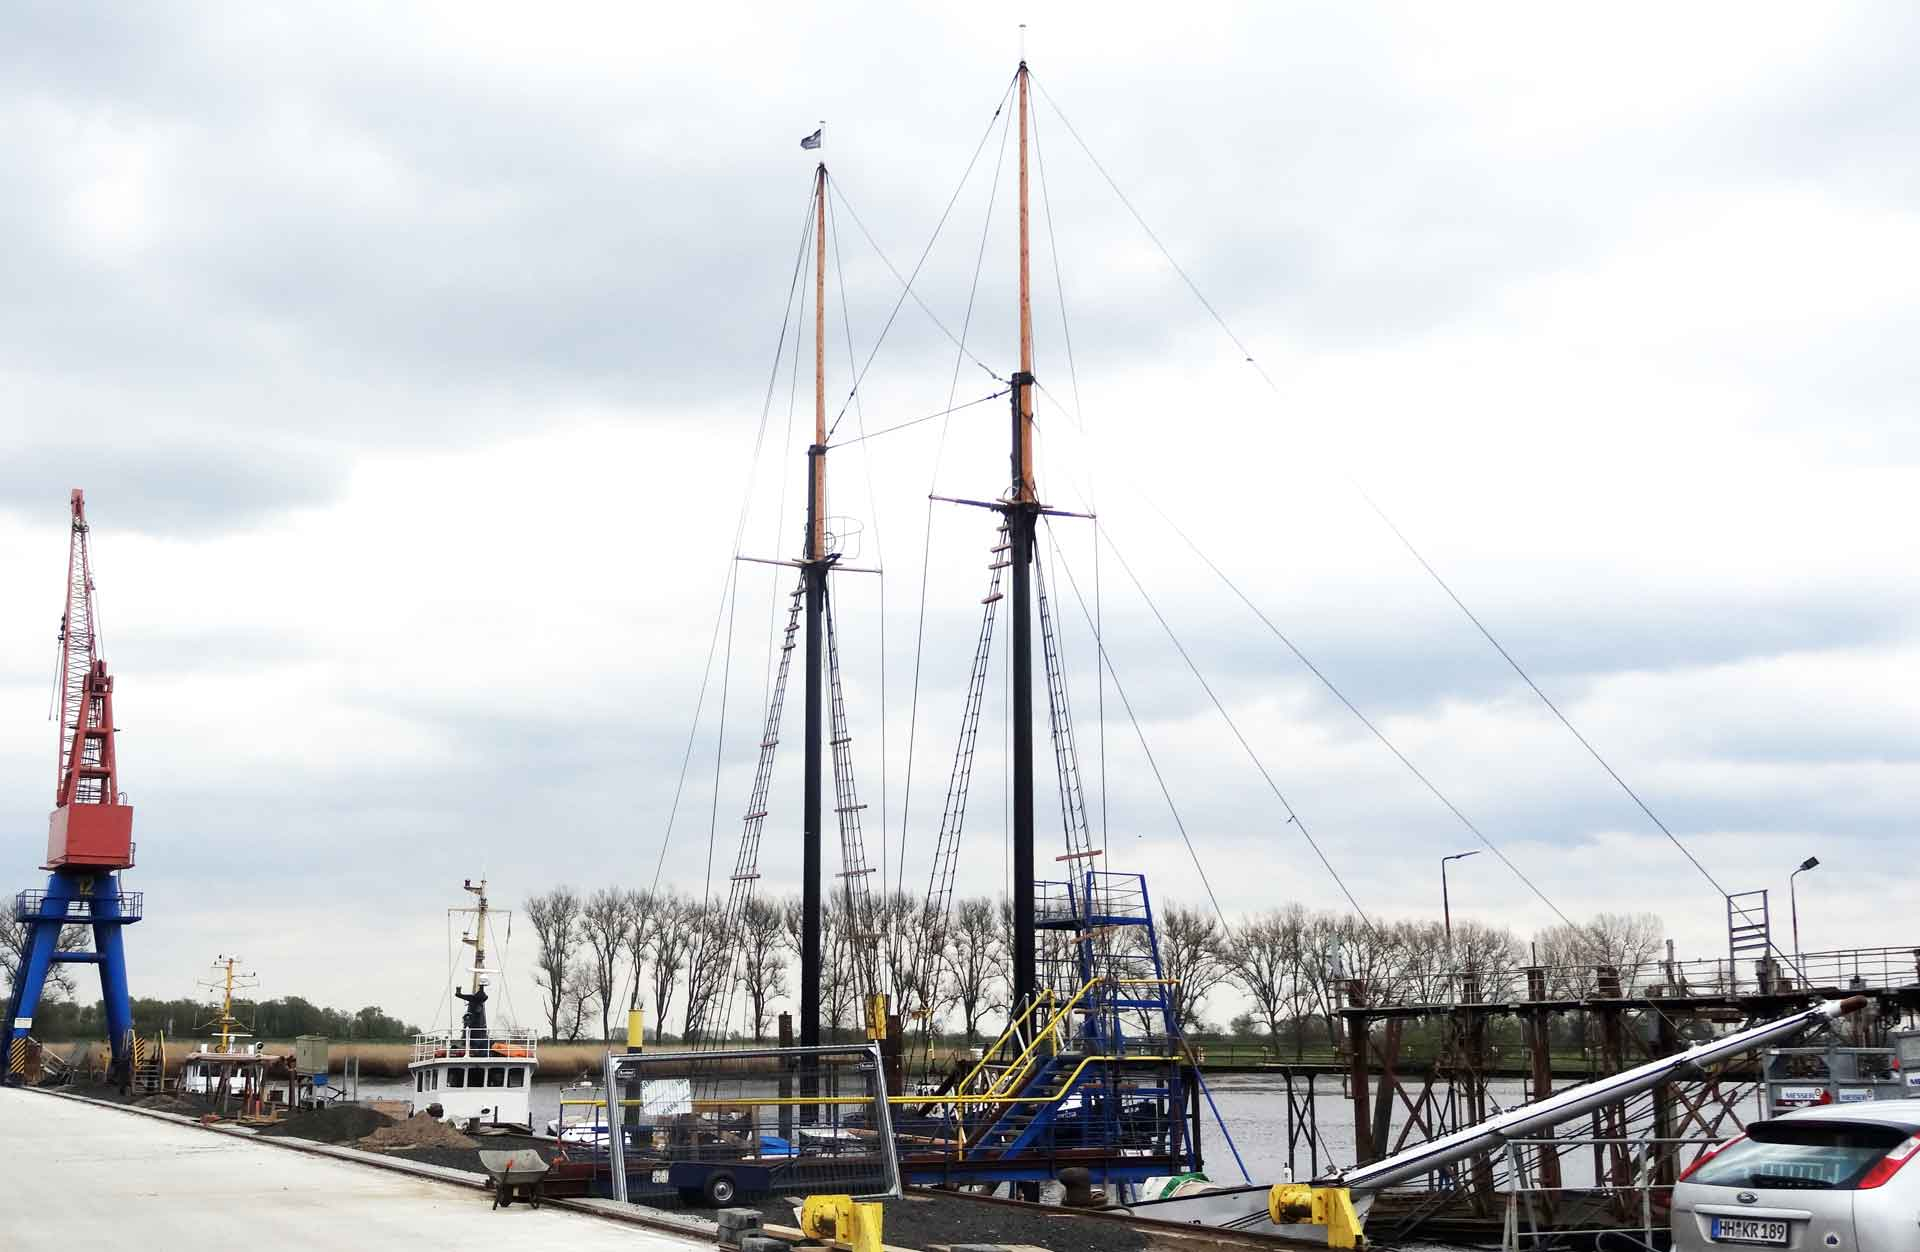 Yard Elsfleth at the River Weser. Two Masts clearly visible.